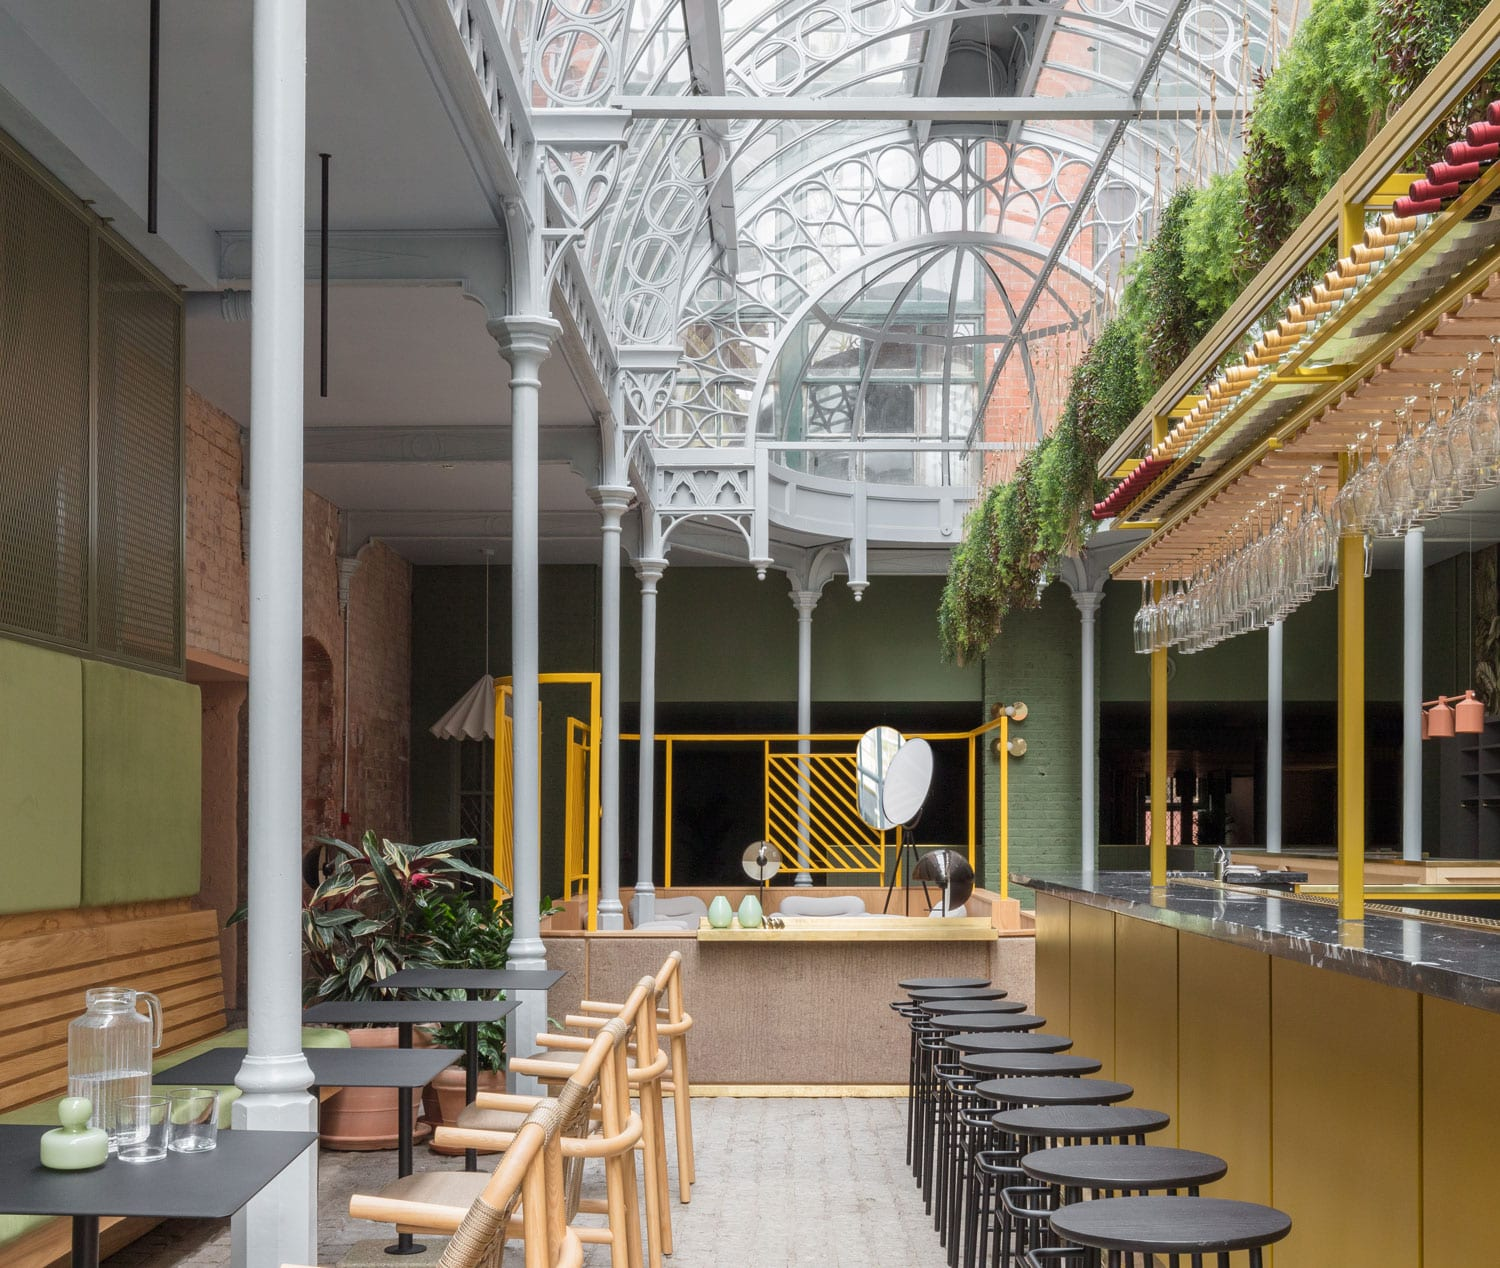 Whitworth Locke Hotel in Manchester by Grzywinski+Pons | Yellowtrace